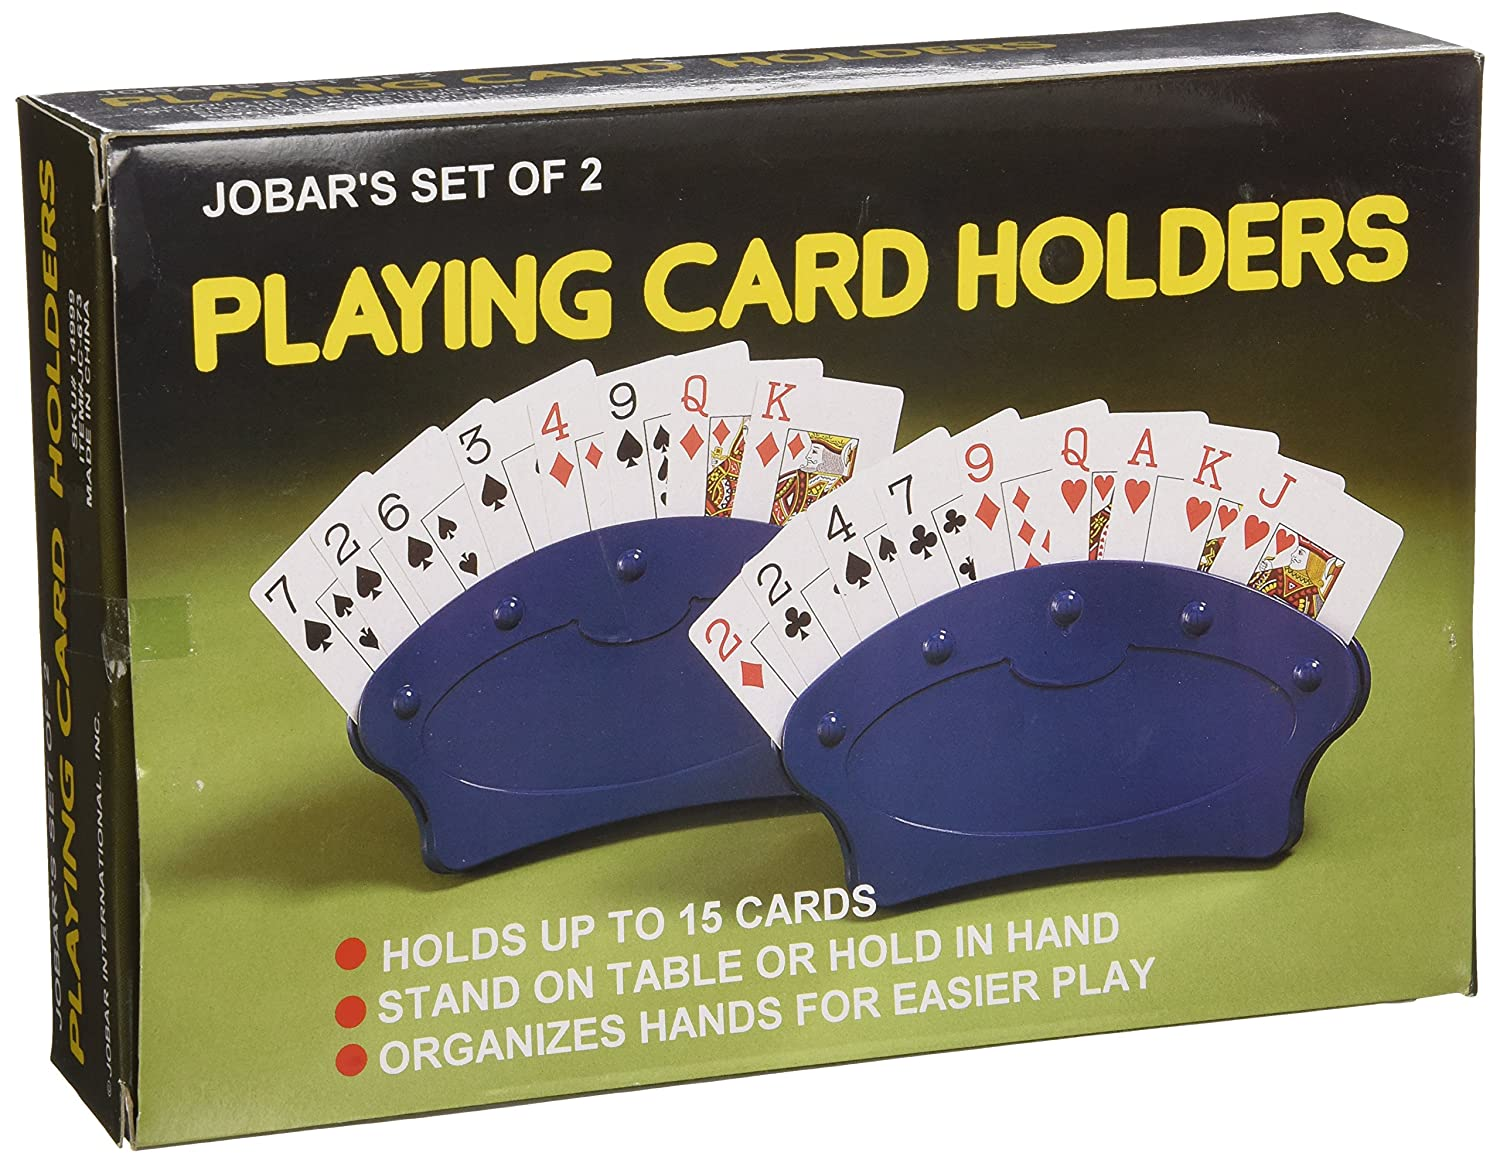 Amazon.com: Playing Card Holders, Set of 2: Toys & Games